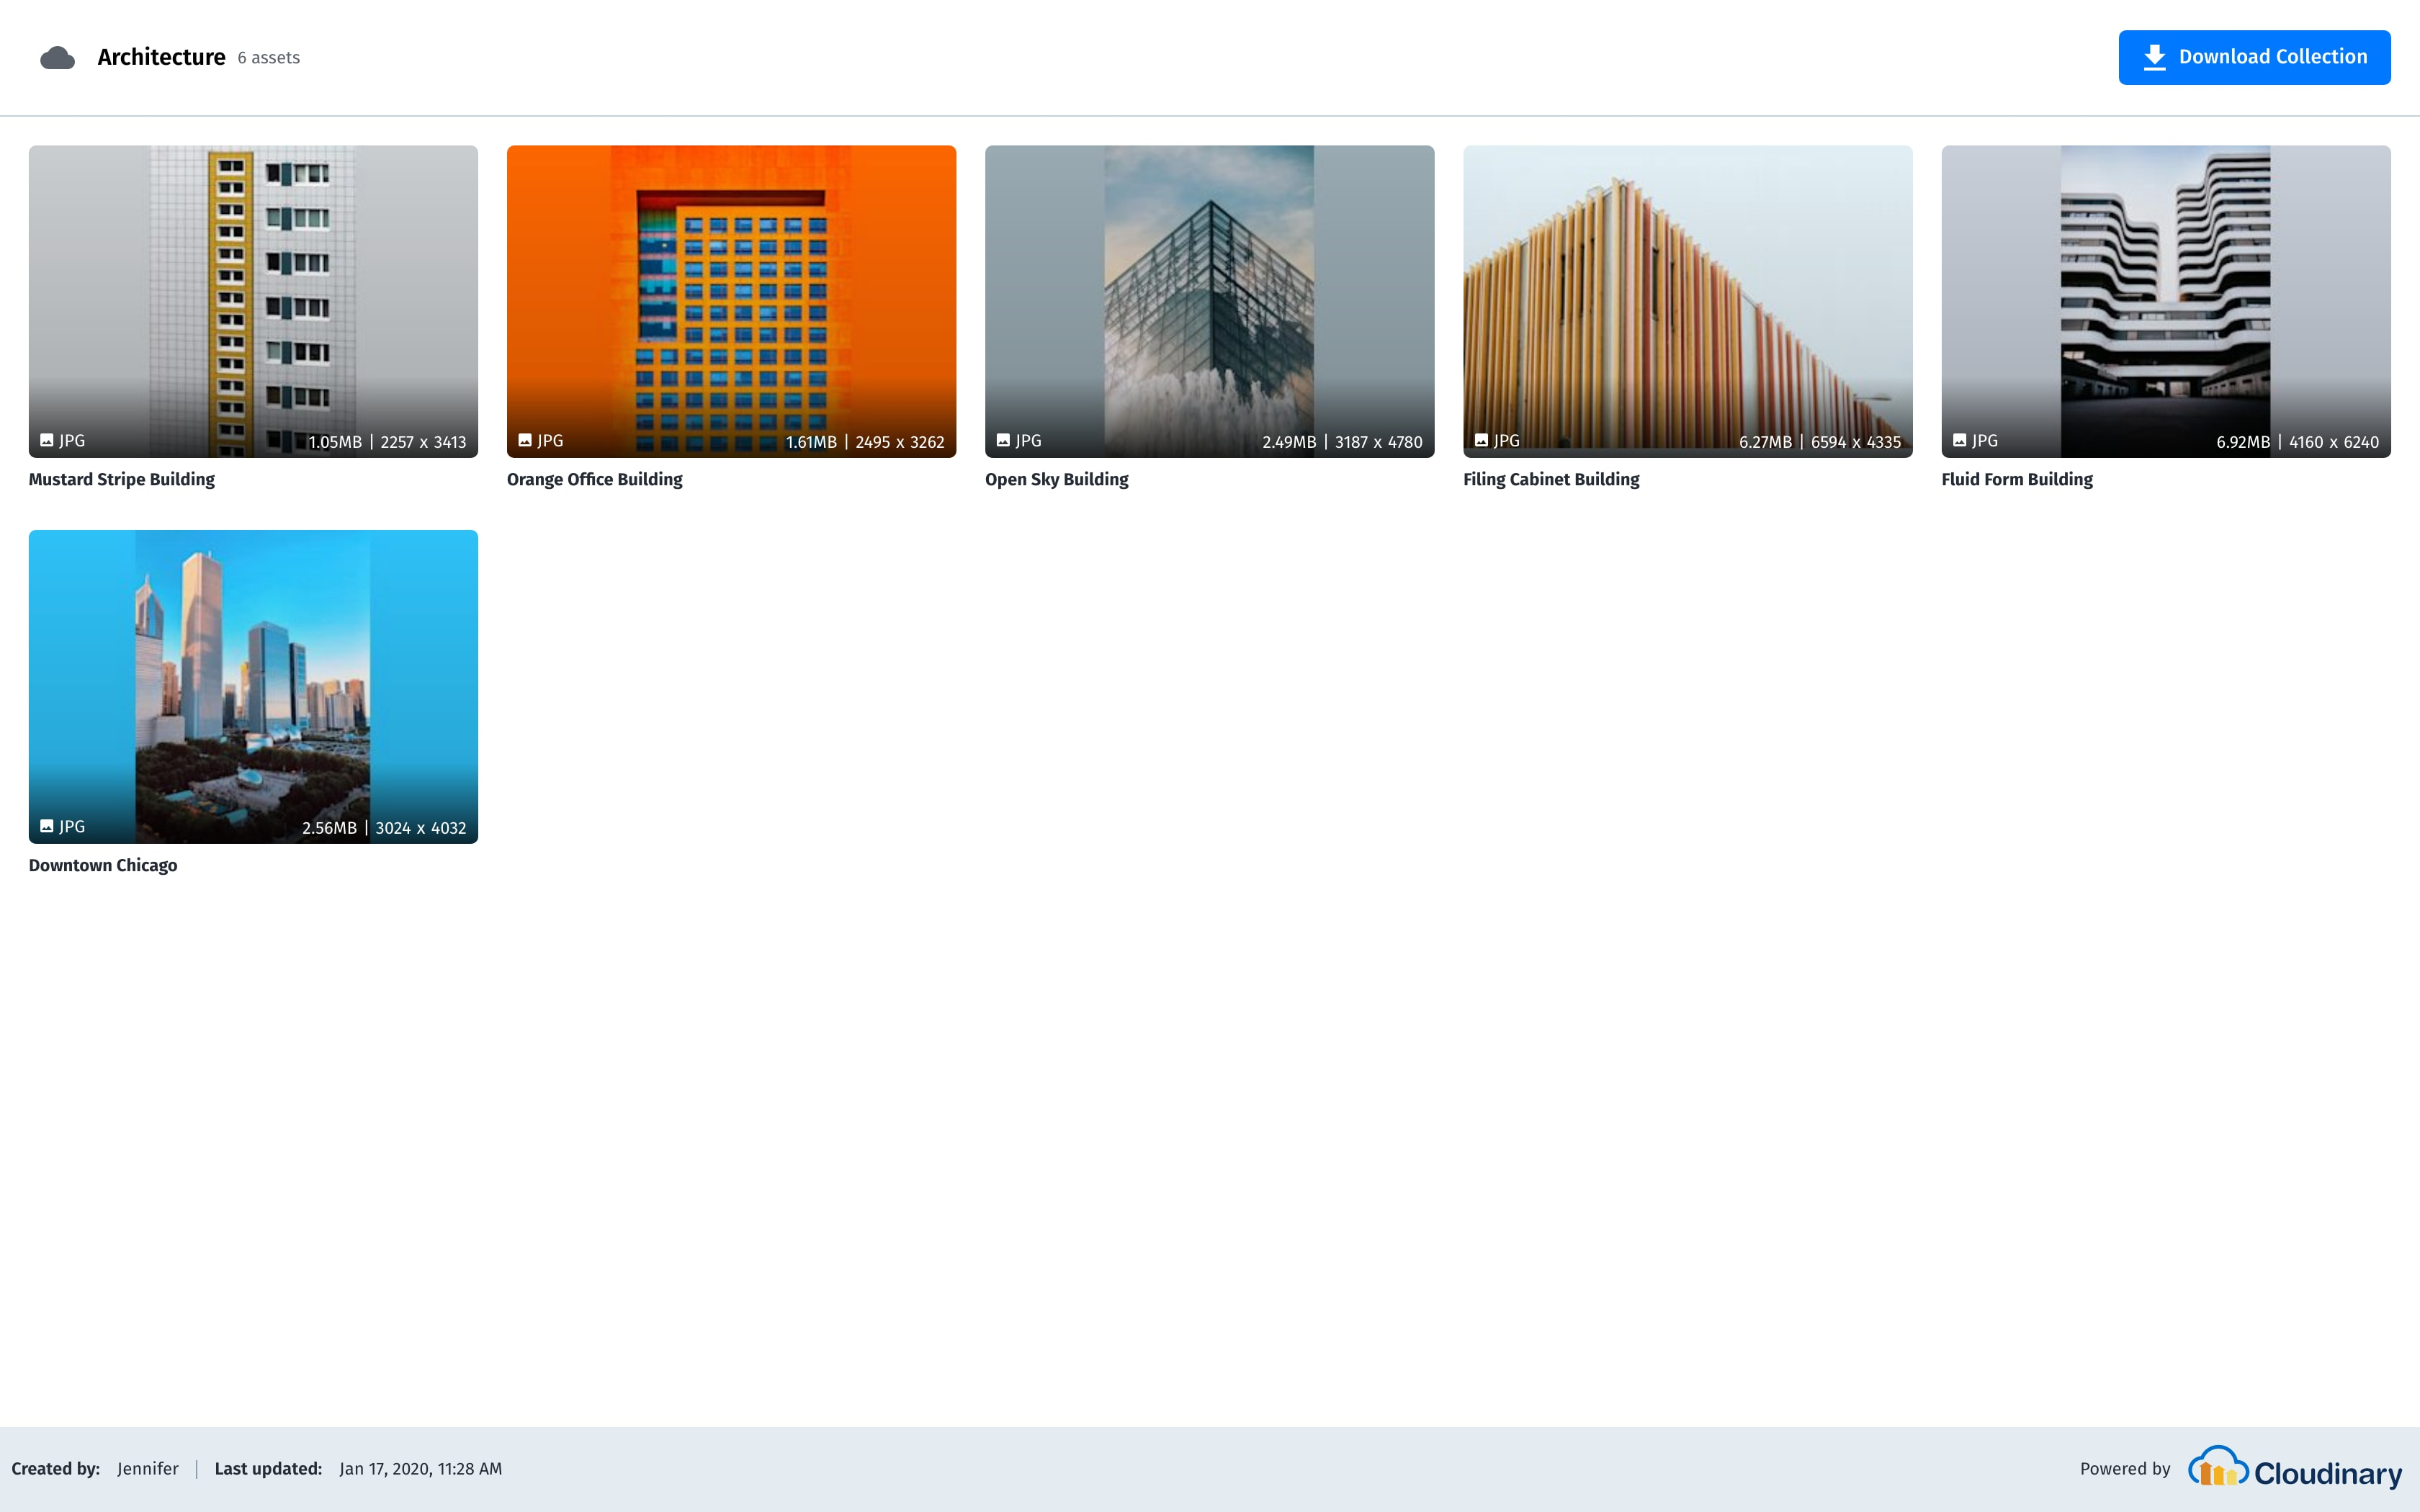 Example of a shared collection, using Cloudinary's Visual Collection Sharing feature.